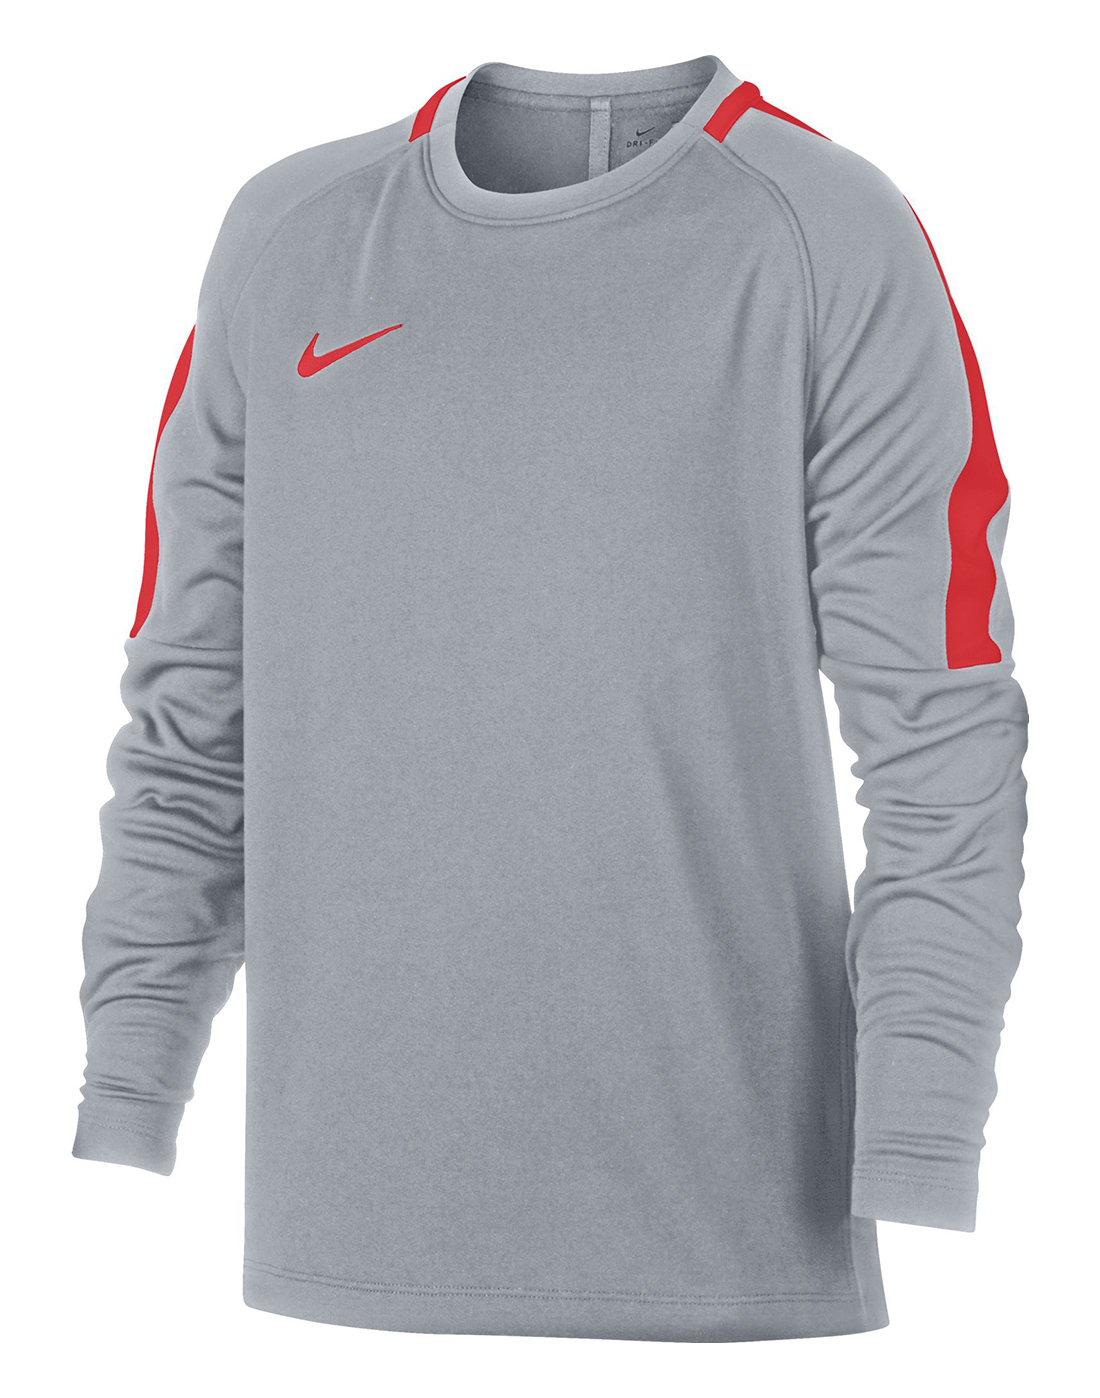 995a6016 Nike Older Boys Academy Crew | Life Style Sports